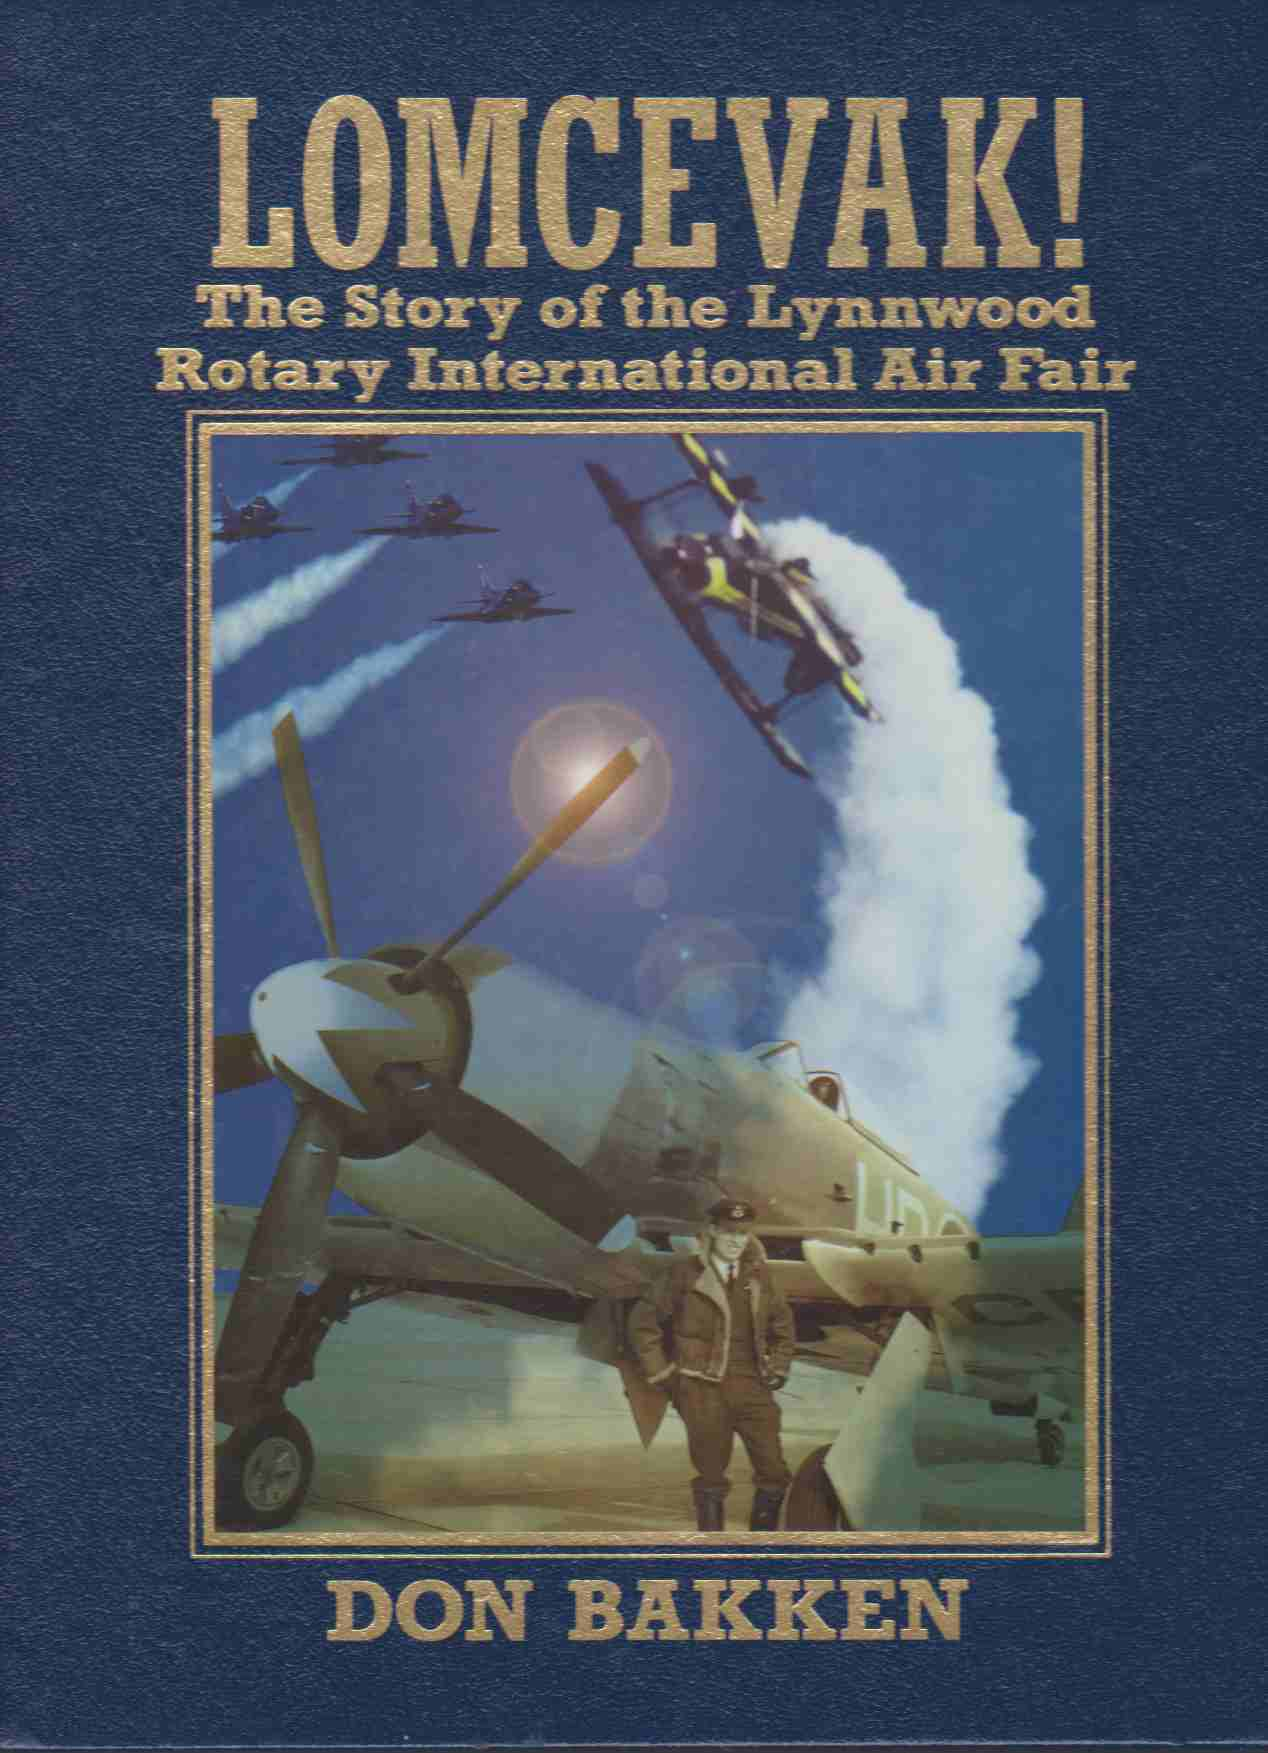 Image for LOMCEVAK!  The Story of the Lynnwood Rotary International Air Fair